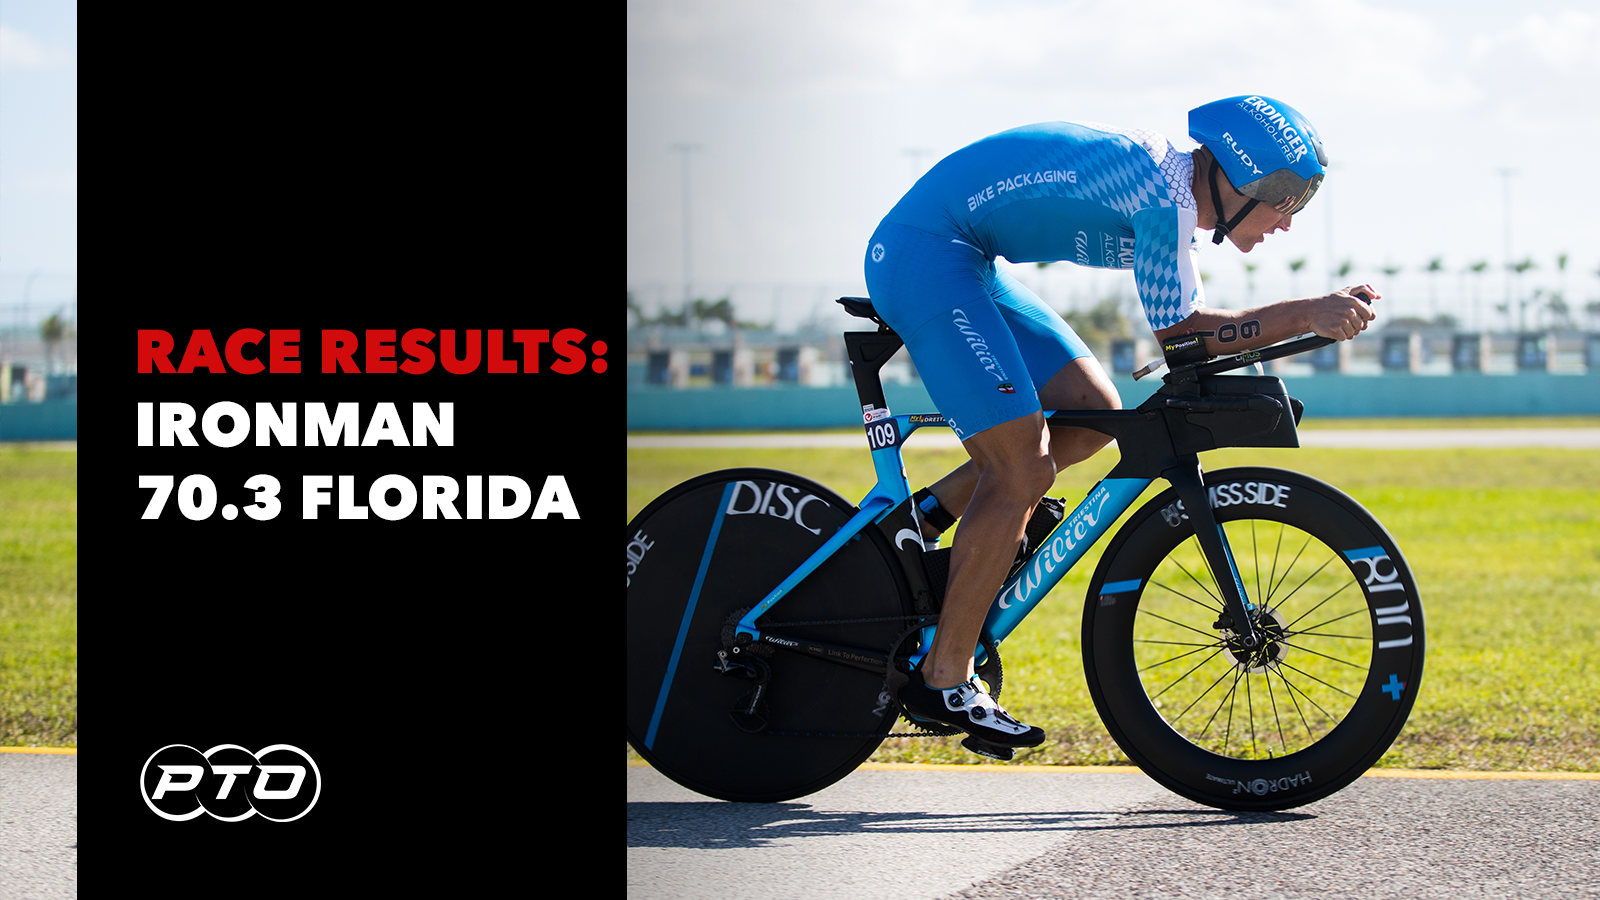 Race Results: Ironman 70.3 Florida